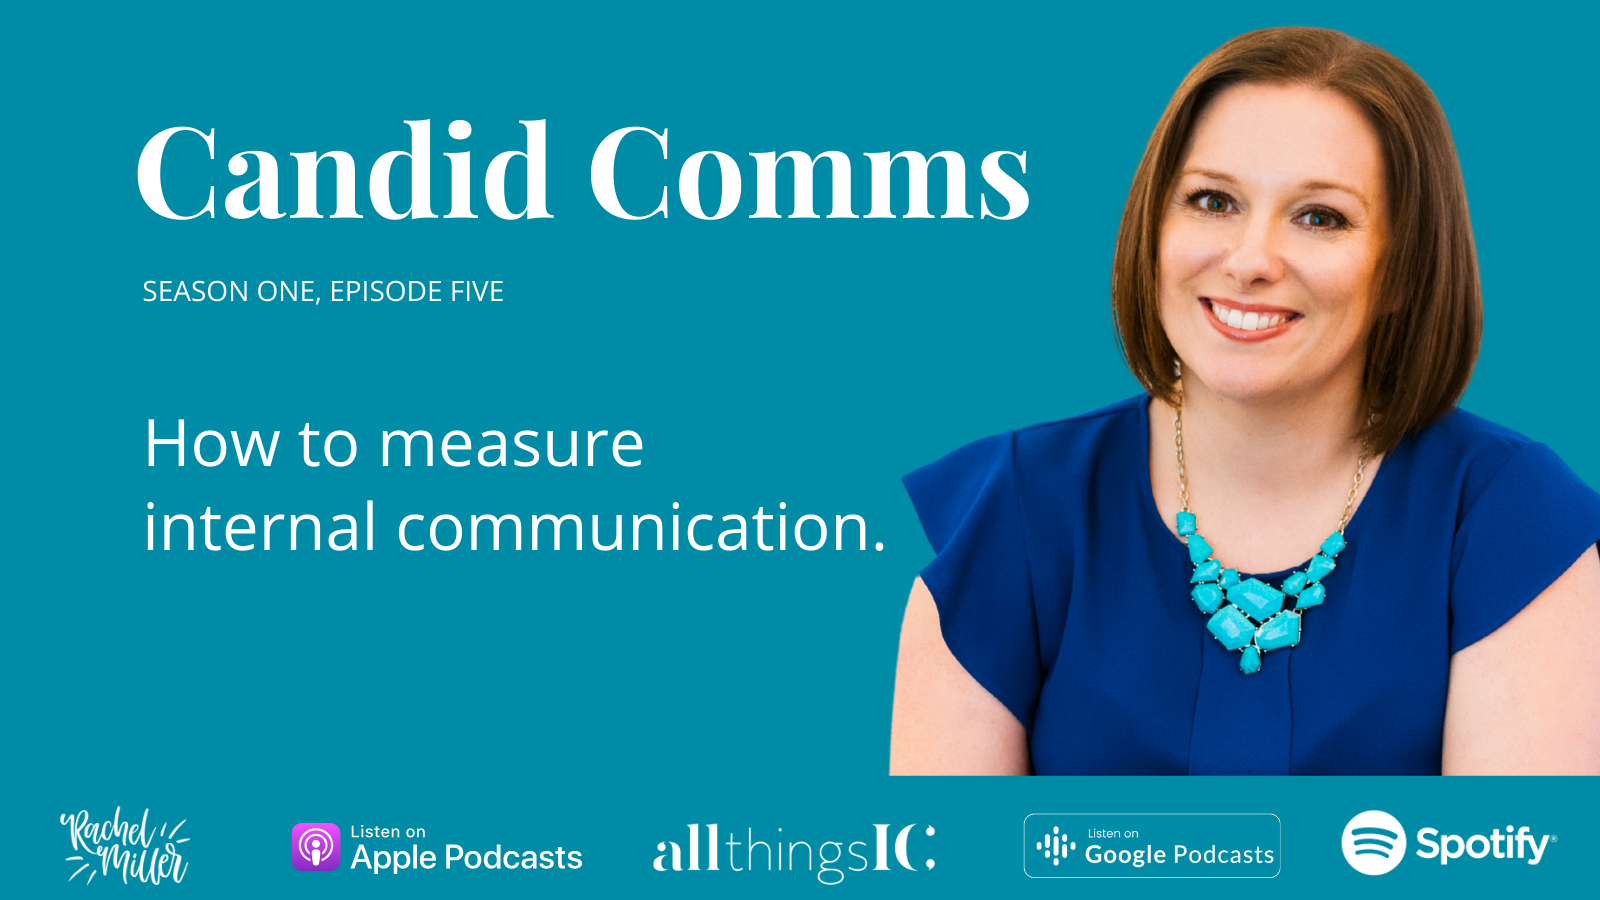 Podcast: How to measure internal communication